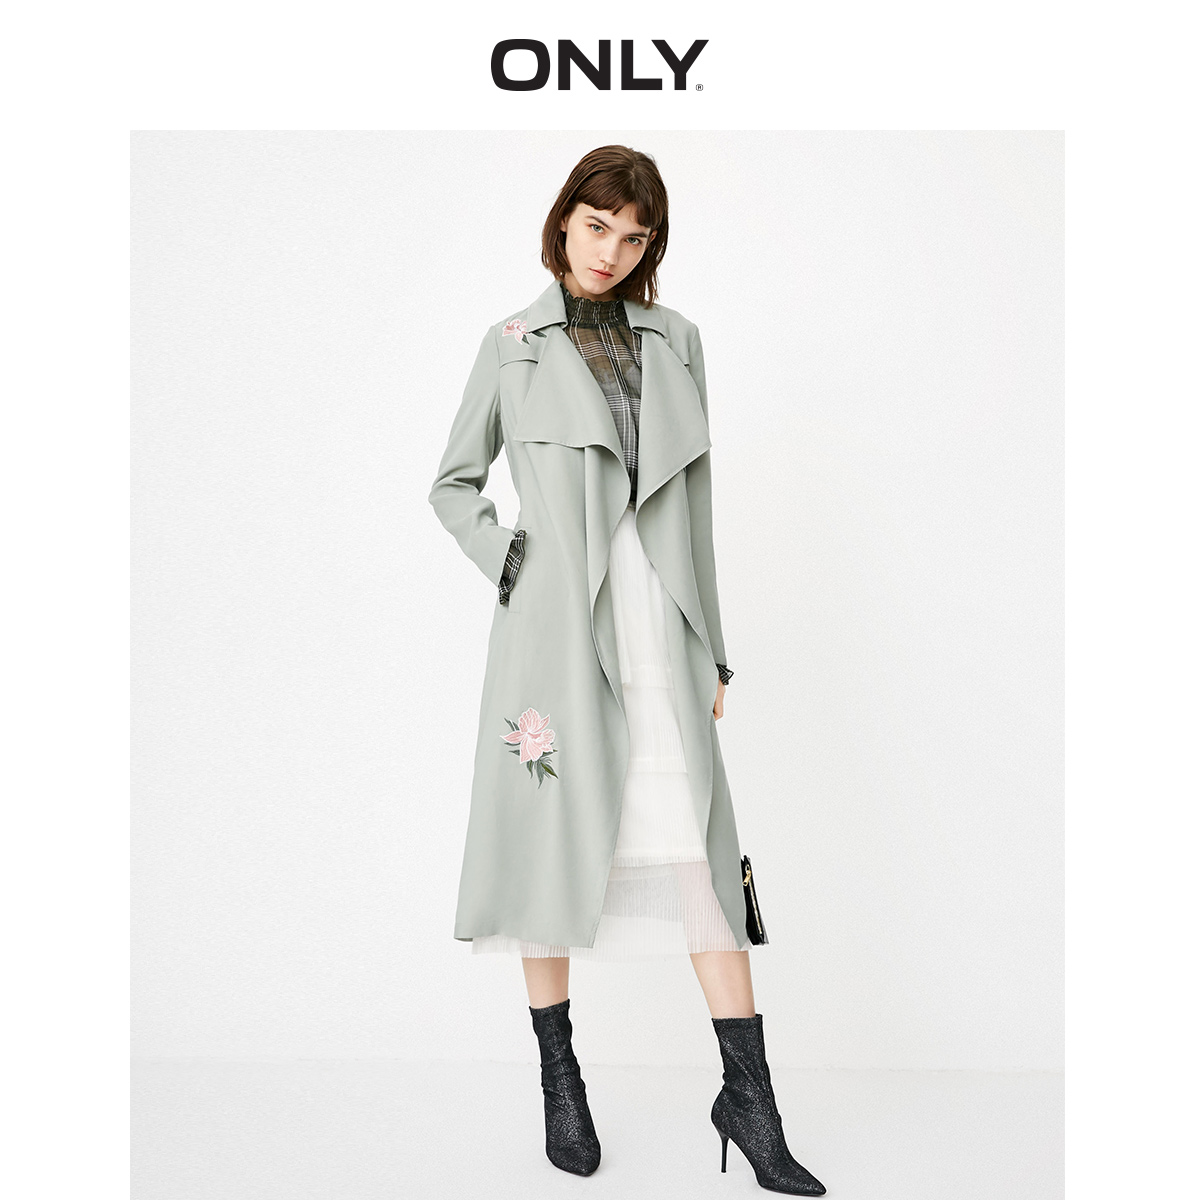 ONLY Women's Lapel Embroidered Cinched Waist Medium Length Wind Coat | 118336512